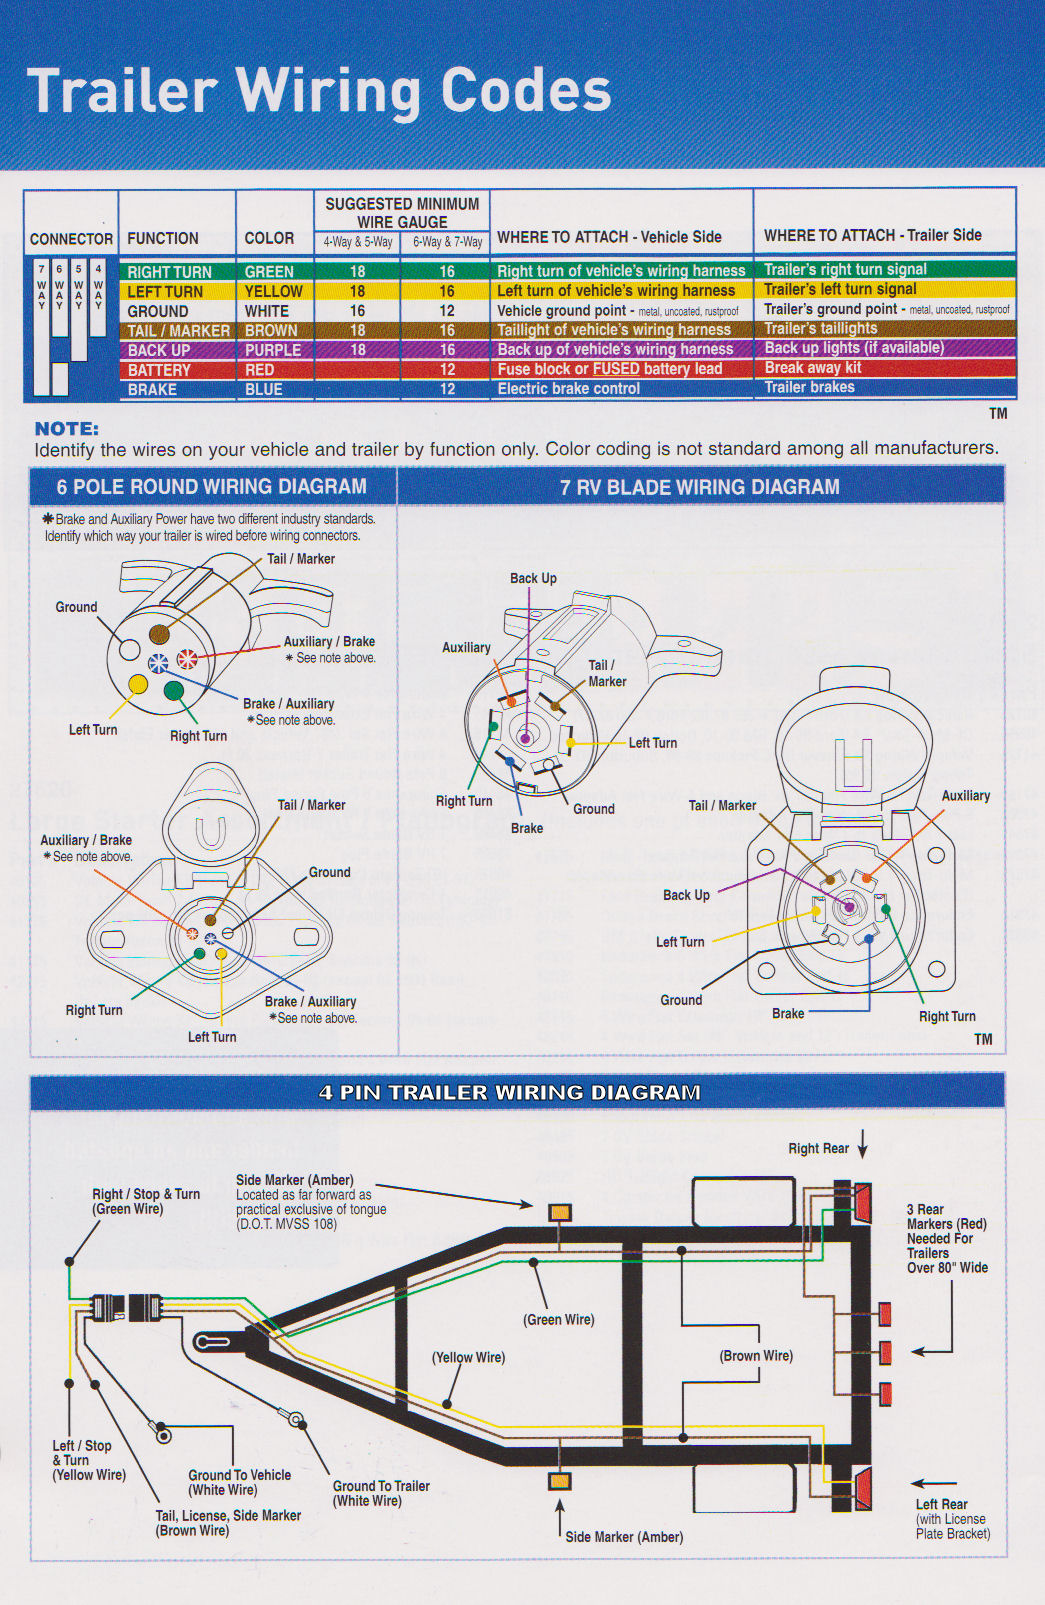 Flatbed Trailer Wiring Diagram - Wiring Diagram Review on